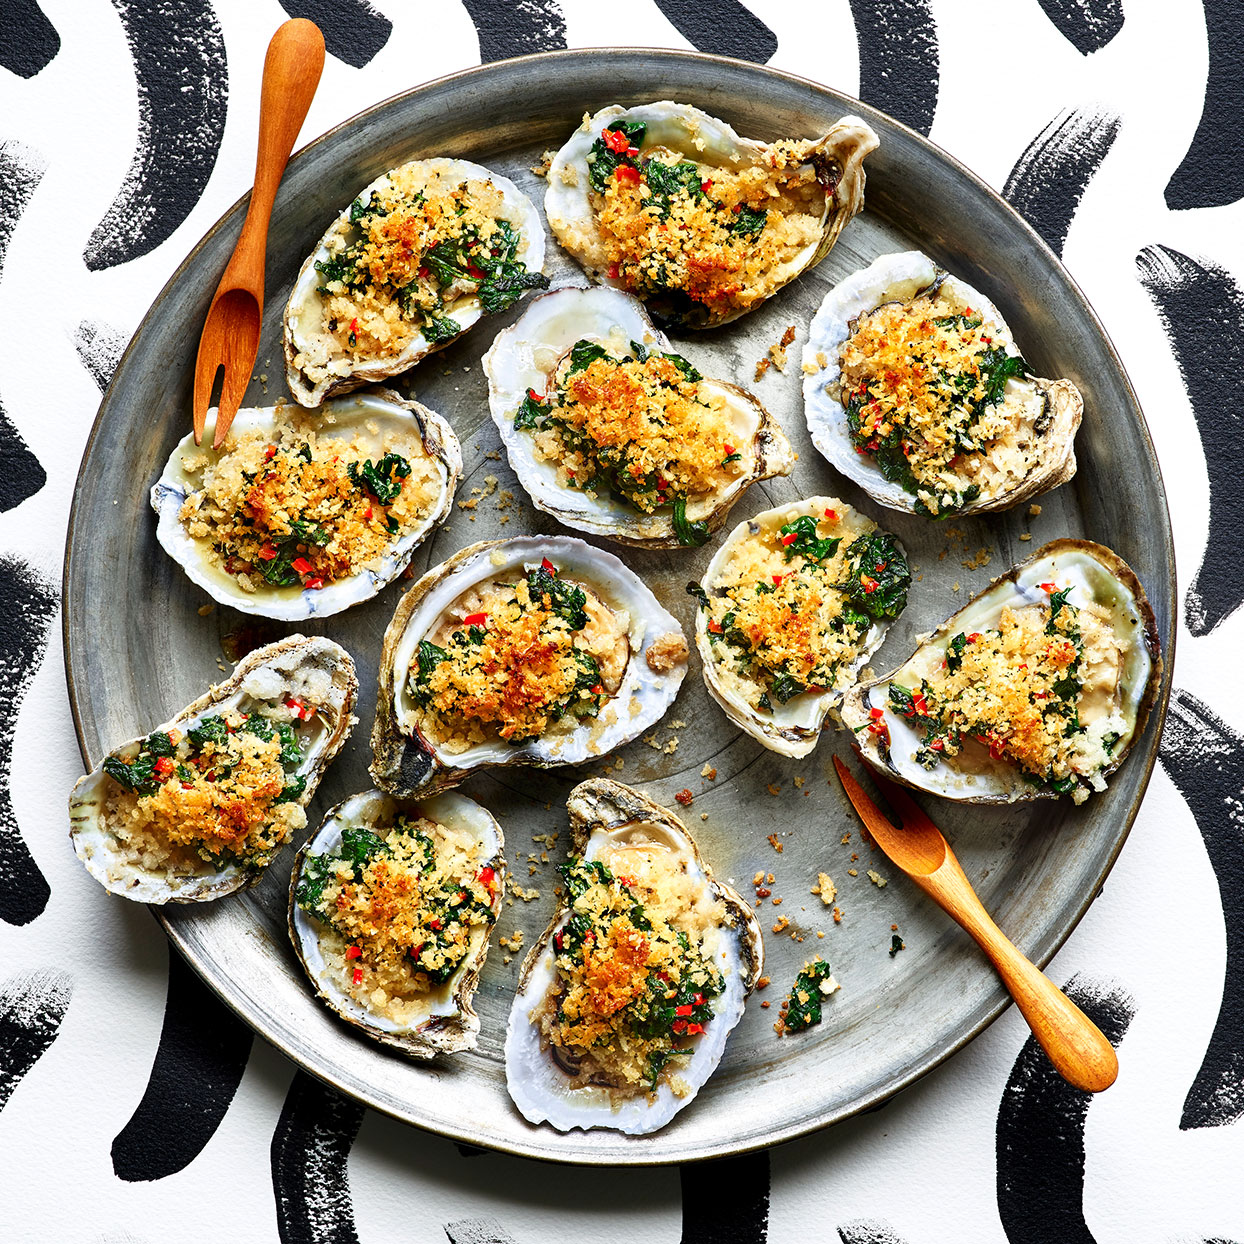 Oysters au Gratin with Spinach & Breadcrumbs Trusted Brands